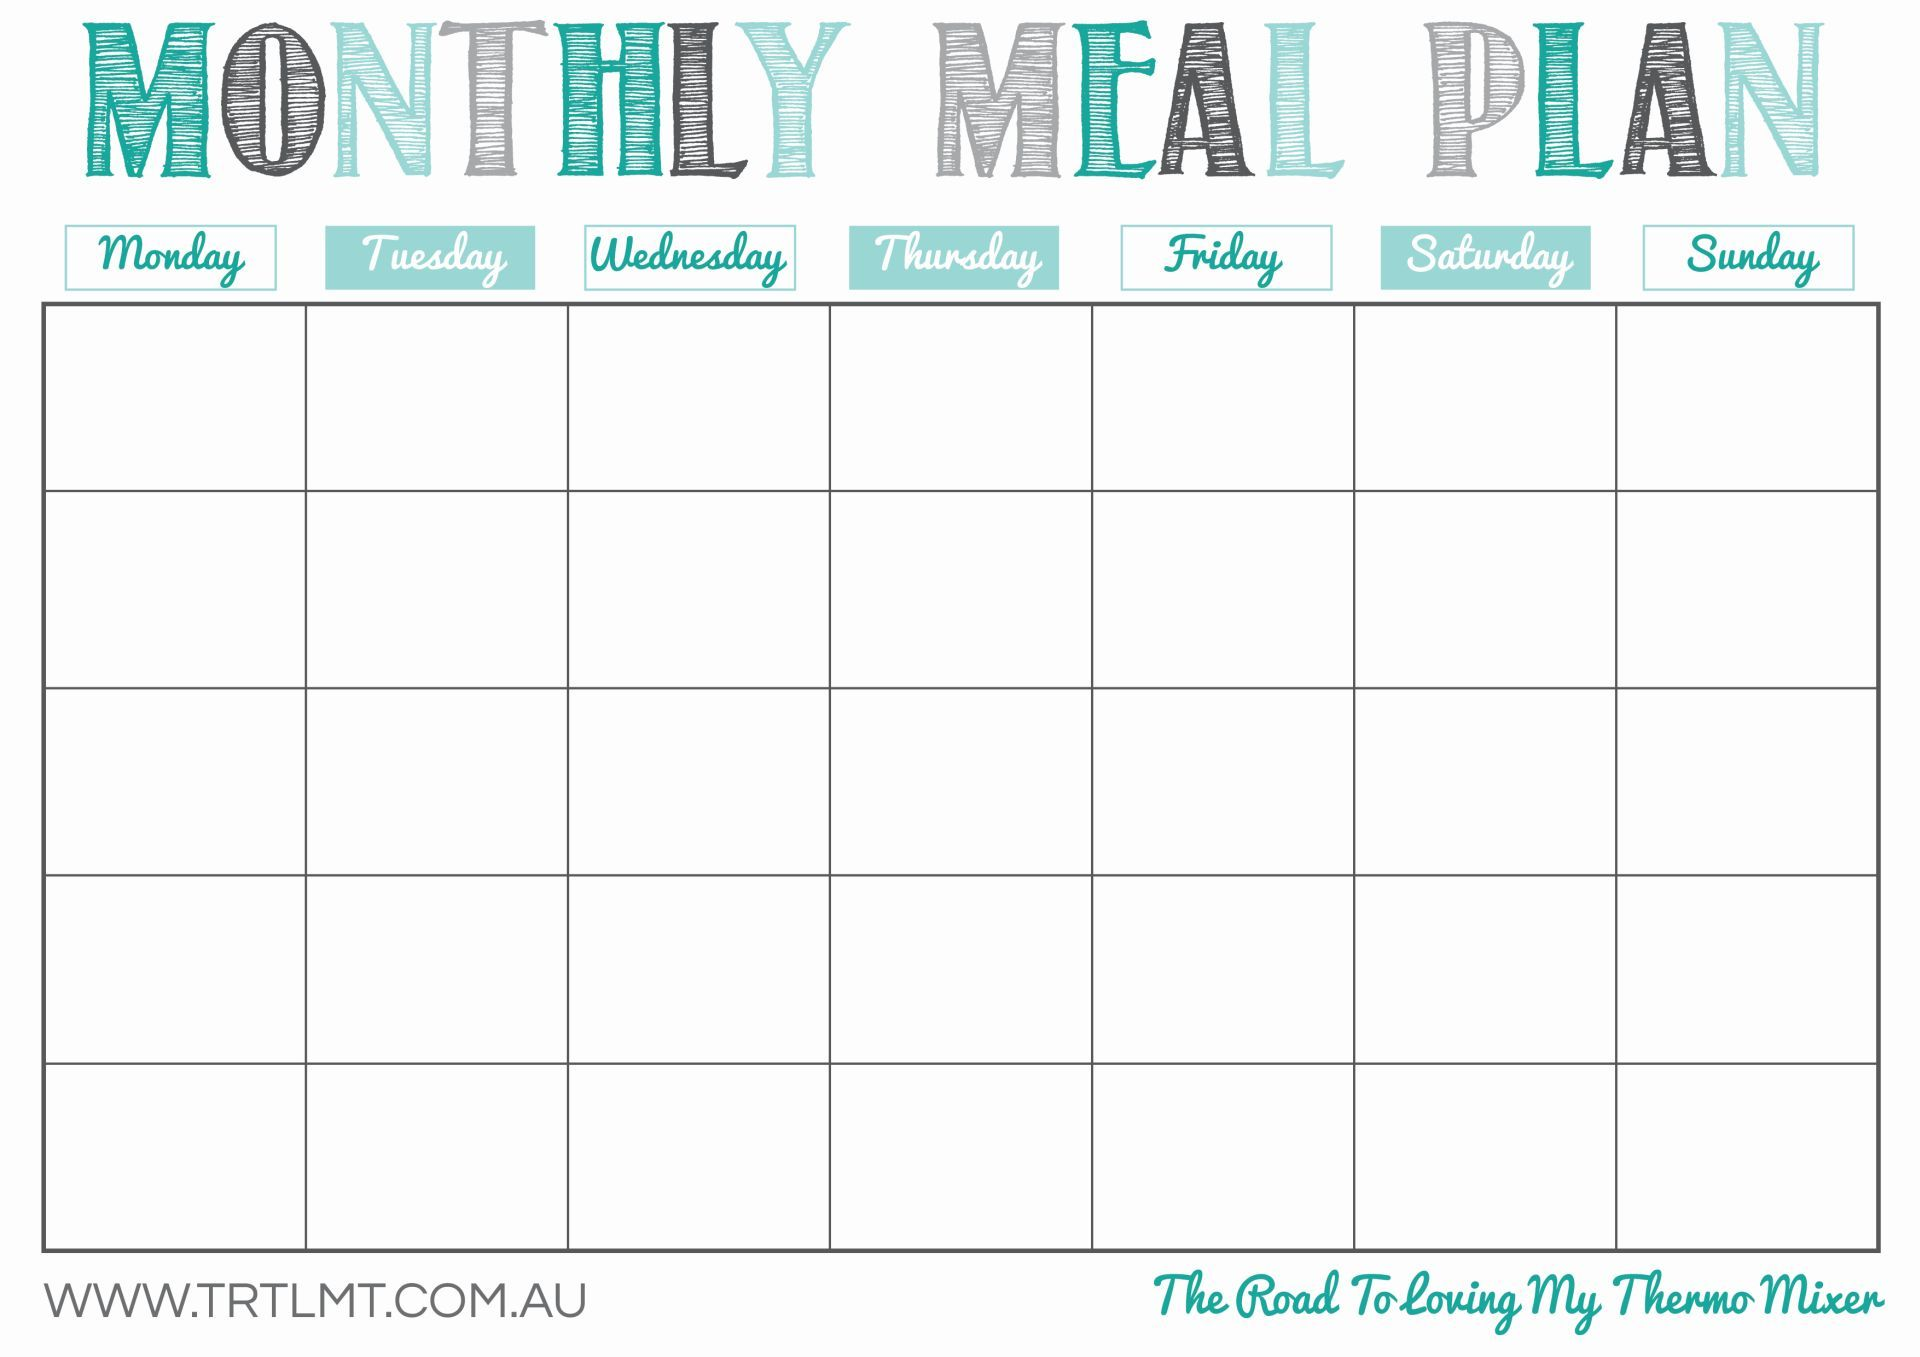 picture about Monthly Planning Calendar referred to as Printable Month-to-month Evening meal Planner small business inside of 2019